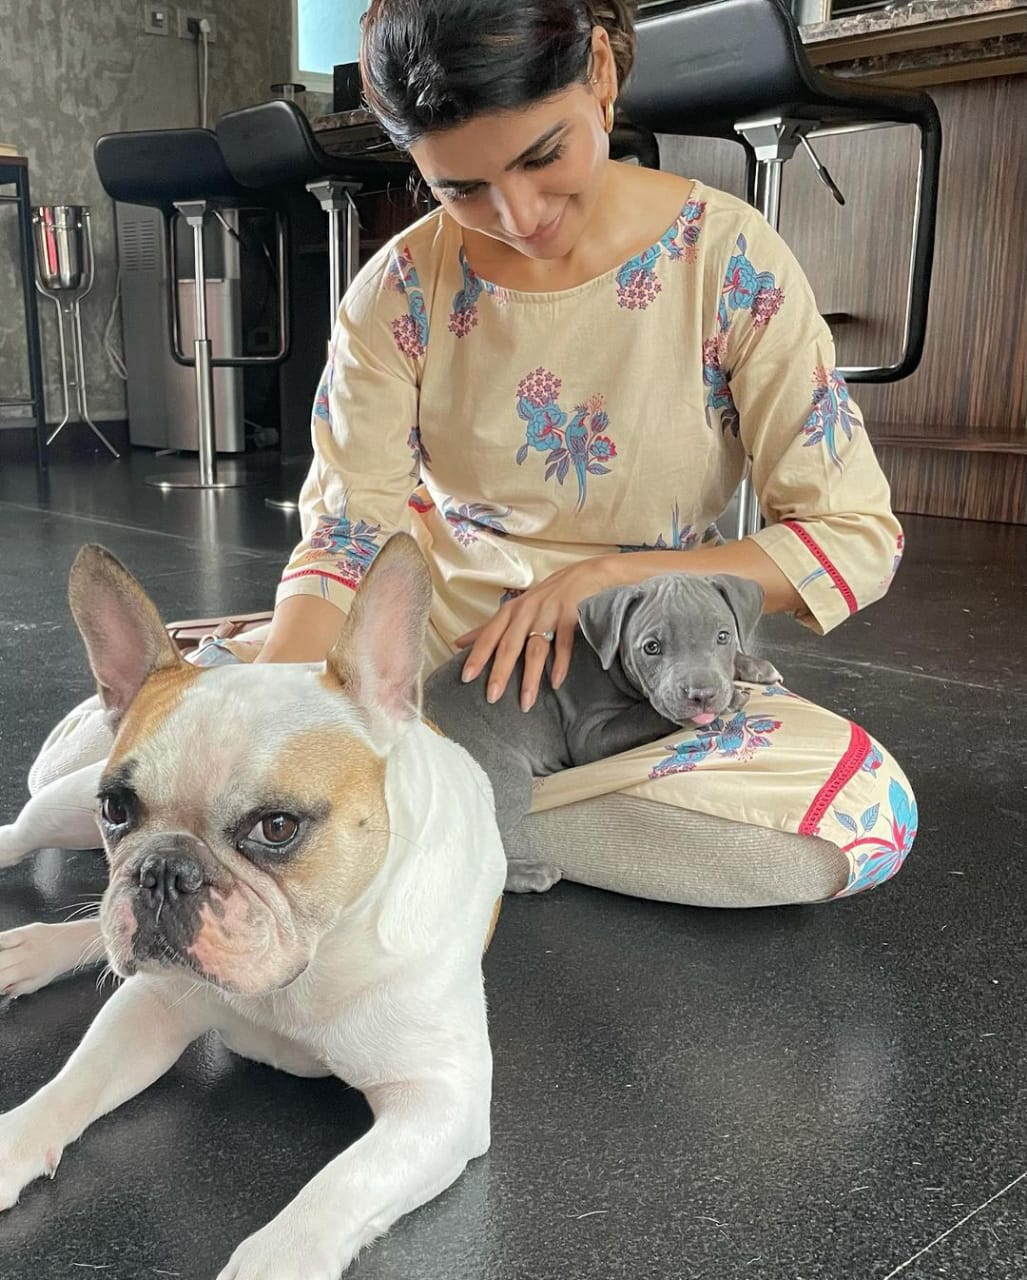 Samantha Akkineni recently welcomed a new dog in the family, and the snaps are too adorable to skip